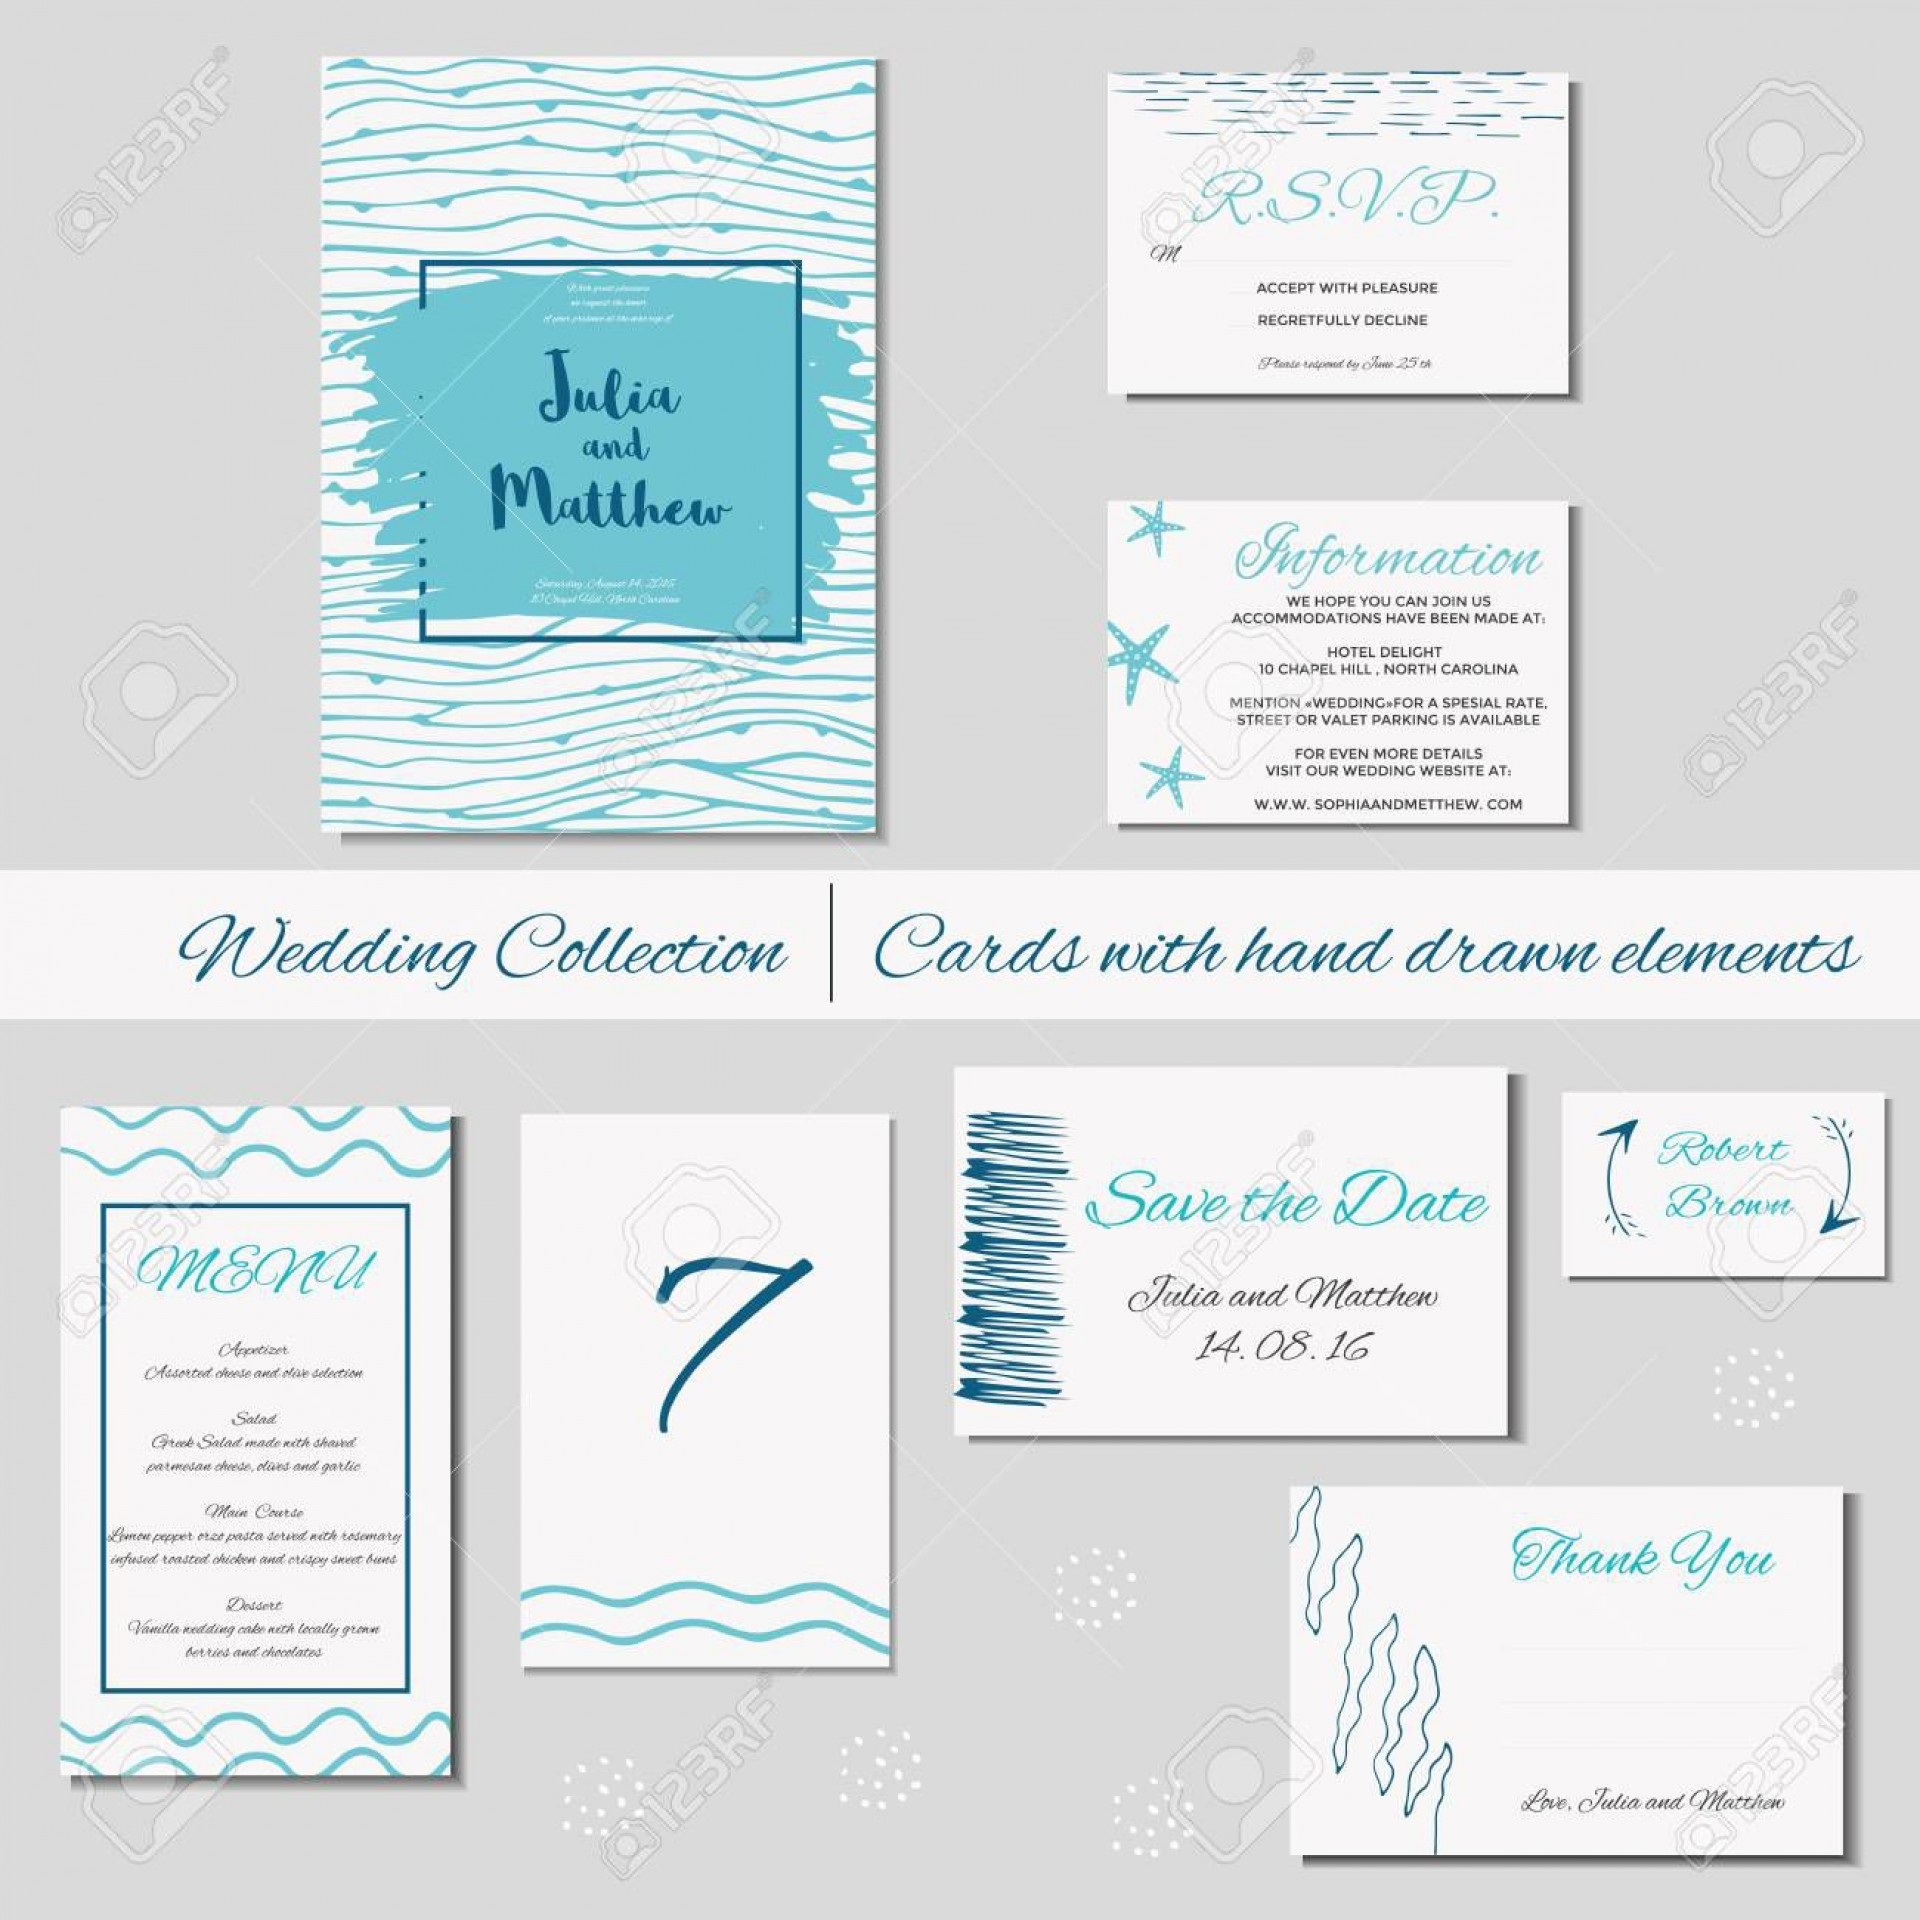 004 Breathtaking Baby Shower Menu Template Example  Templates Lunch Printable Downloadable1920